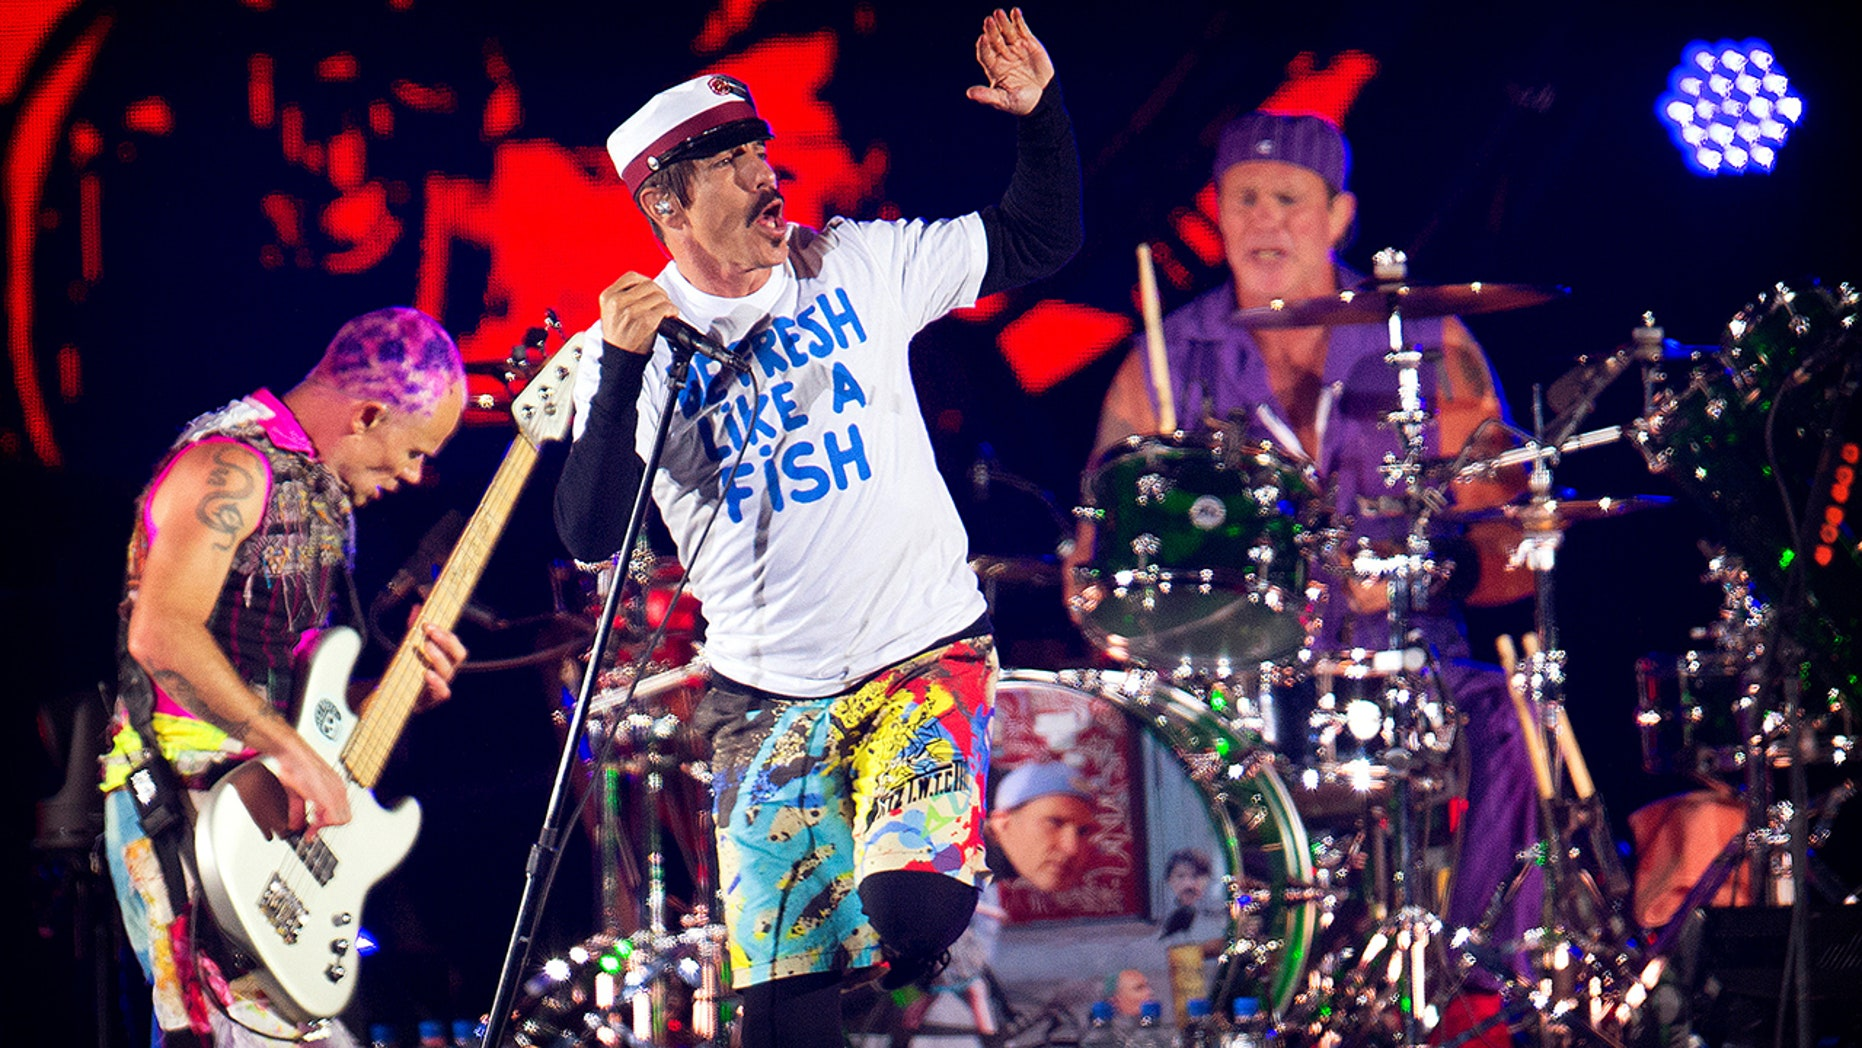 Red Hot Chili Peppers perform at the orange stage at Roskilde Festival in Roskilde, Denmark June 29, 2016.